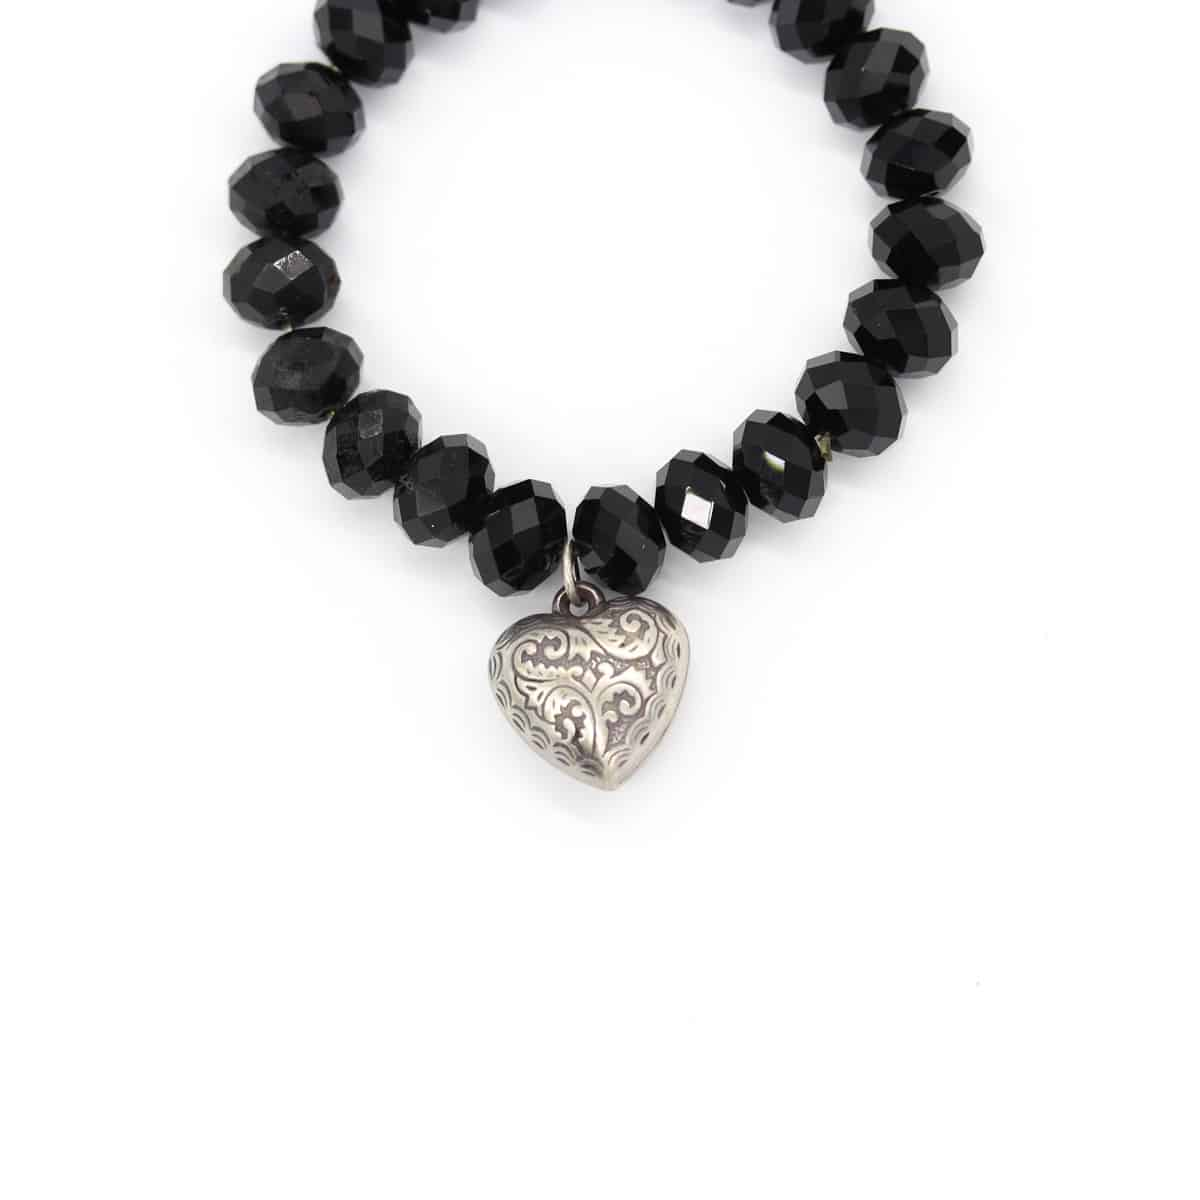 Silver Heart And Agate Black Stretch Beaded Bracelet By BJewel*Co